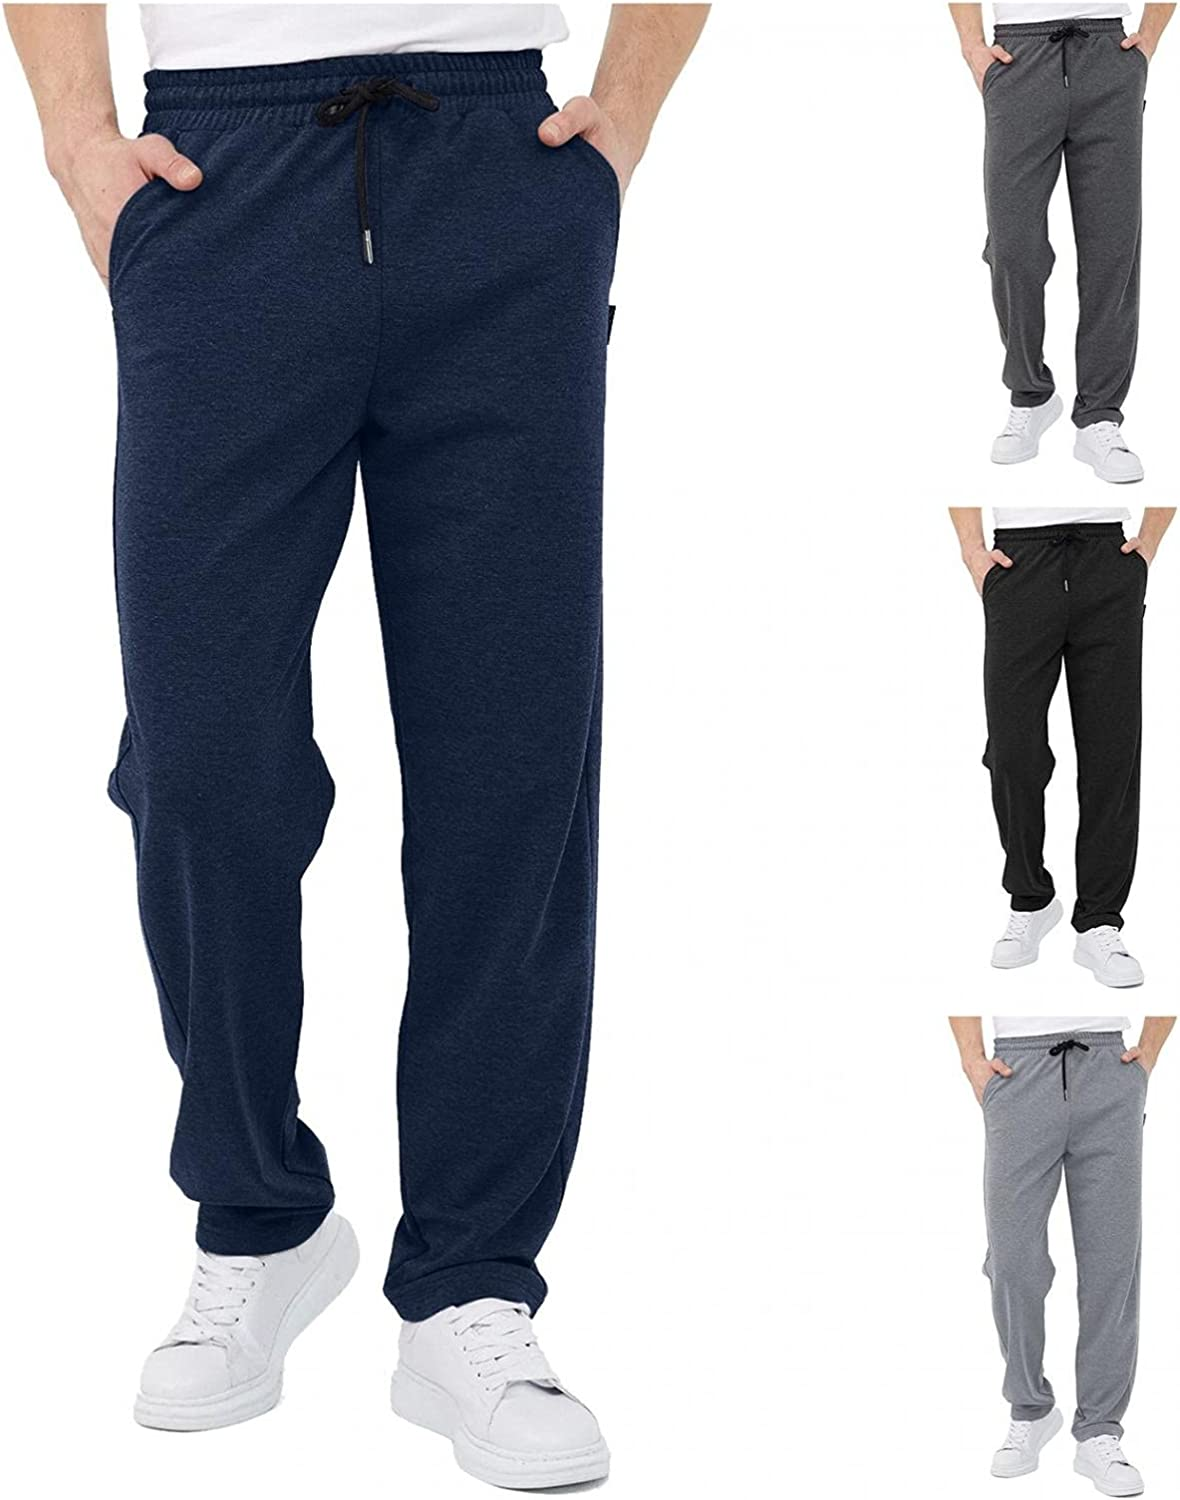 iCODOD Dedication Men's Shorts Sports Casual low-pricing Elastic Shor Solid Color Waist